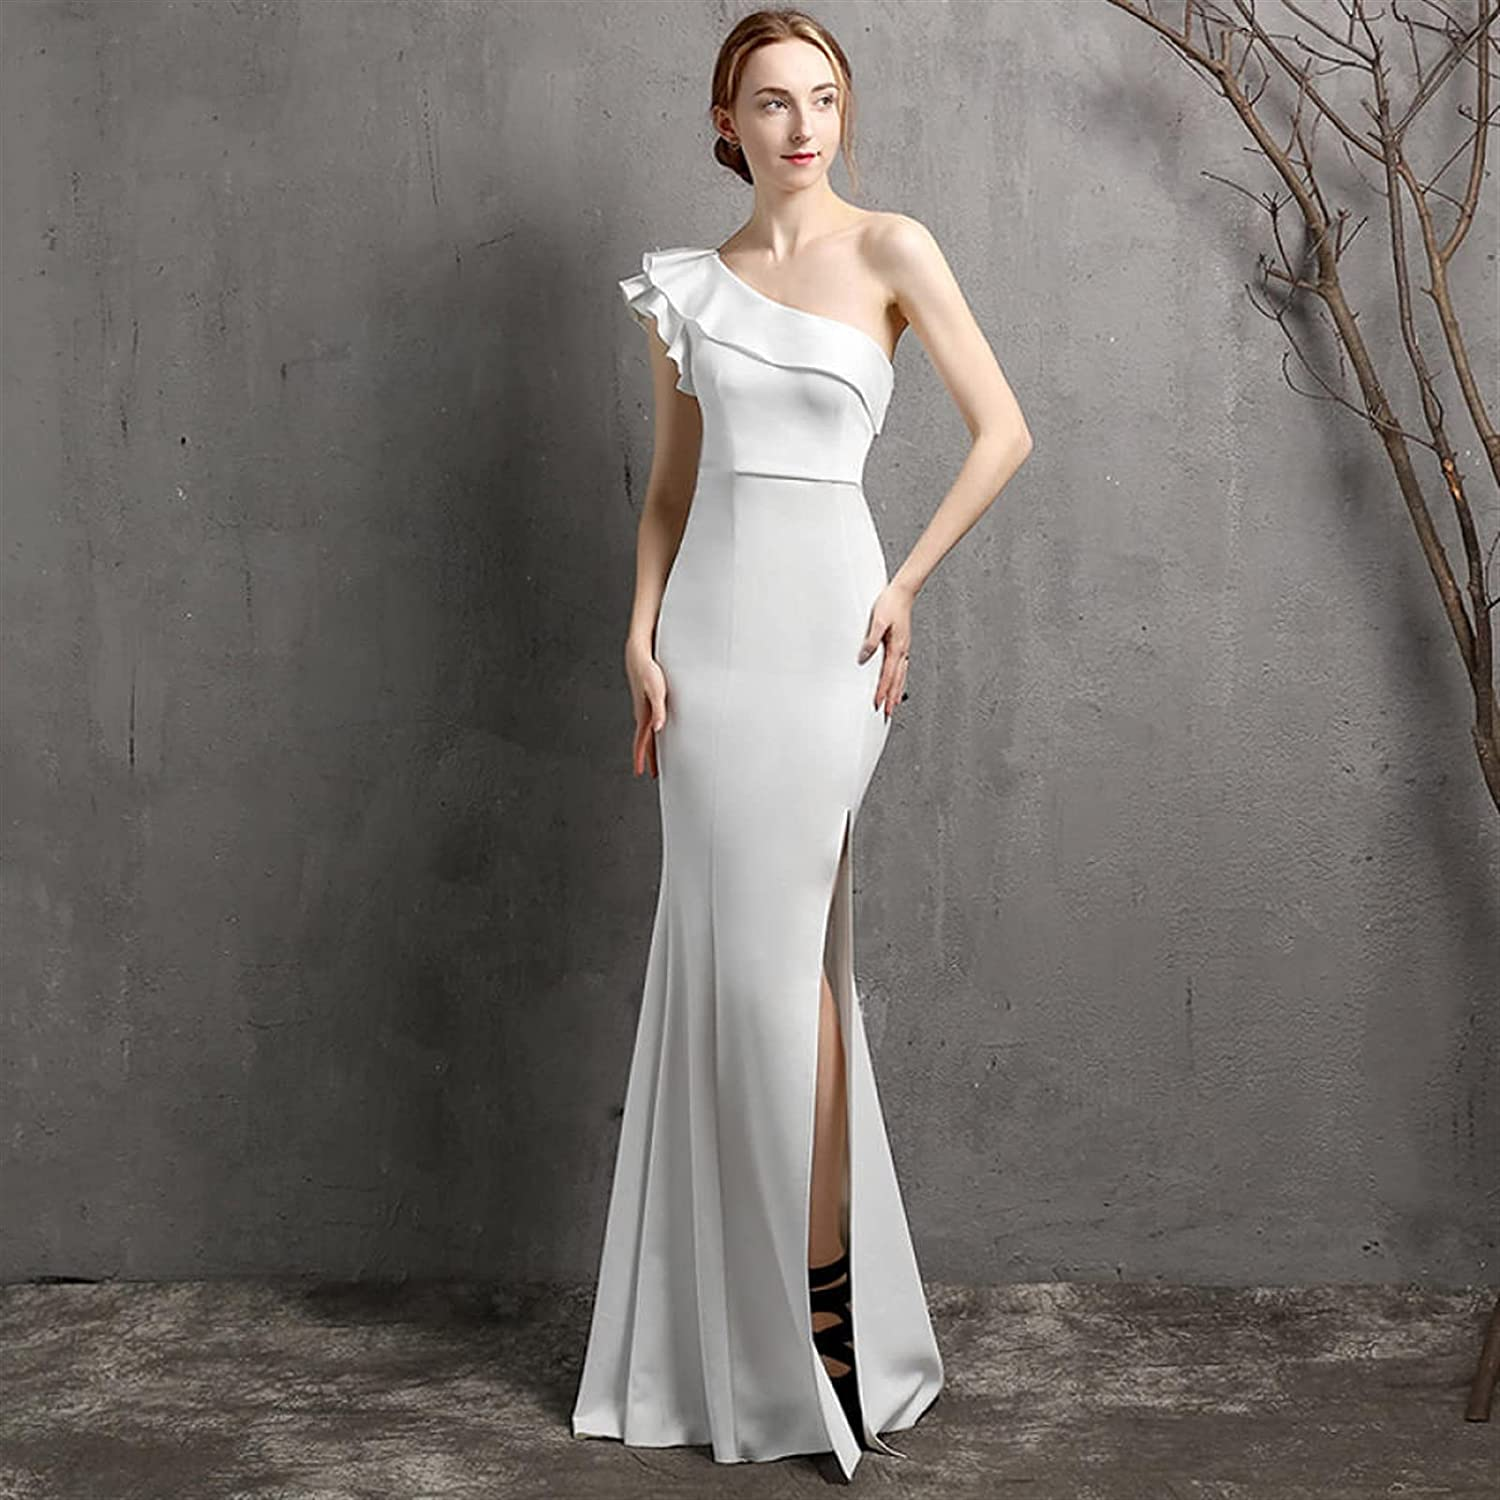 Uongfi Wedding Dresses for Bride One Shoulder Evening Party Dres